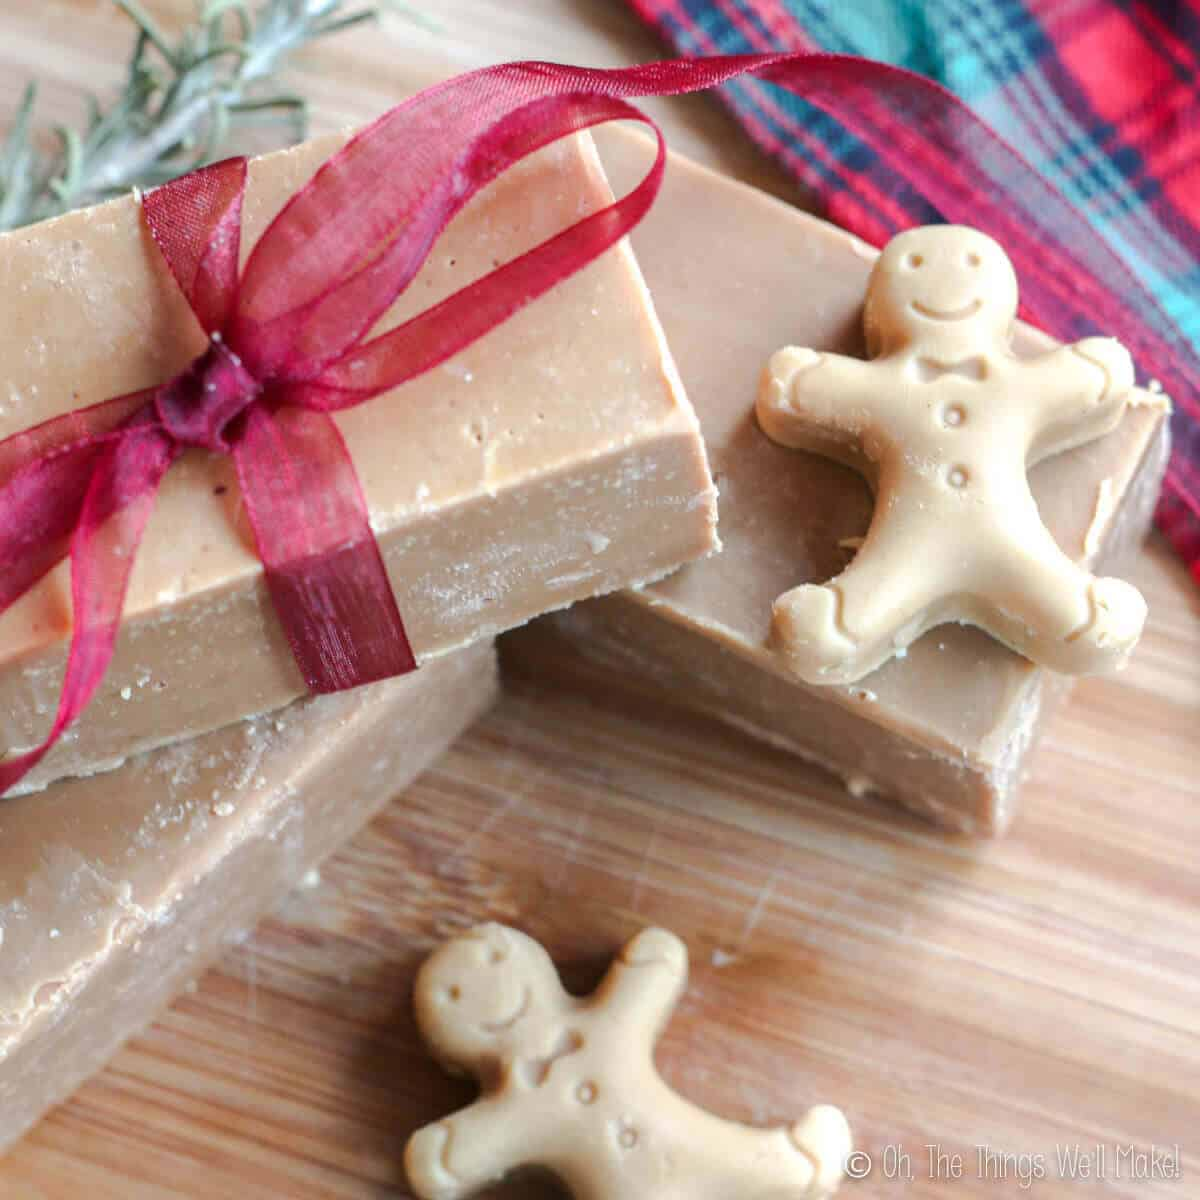 Overhead view of 3 bars of homemade gingerbread soap with some mini gingerbread man shaped soaps